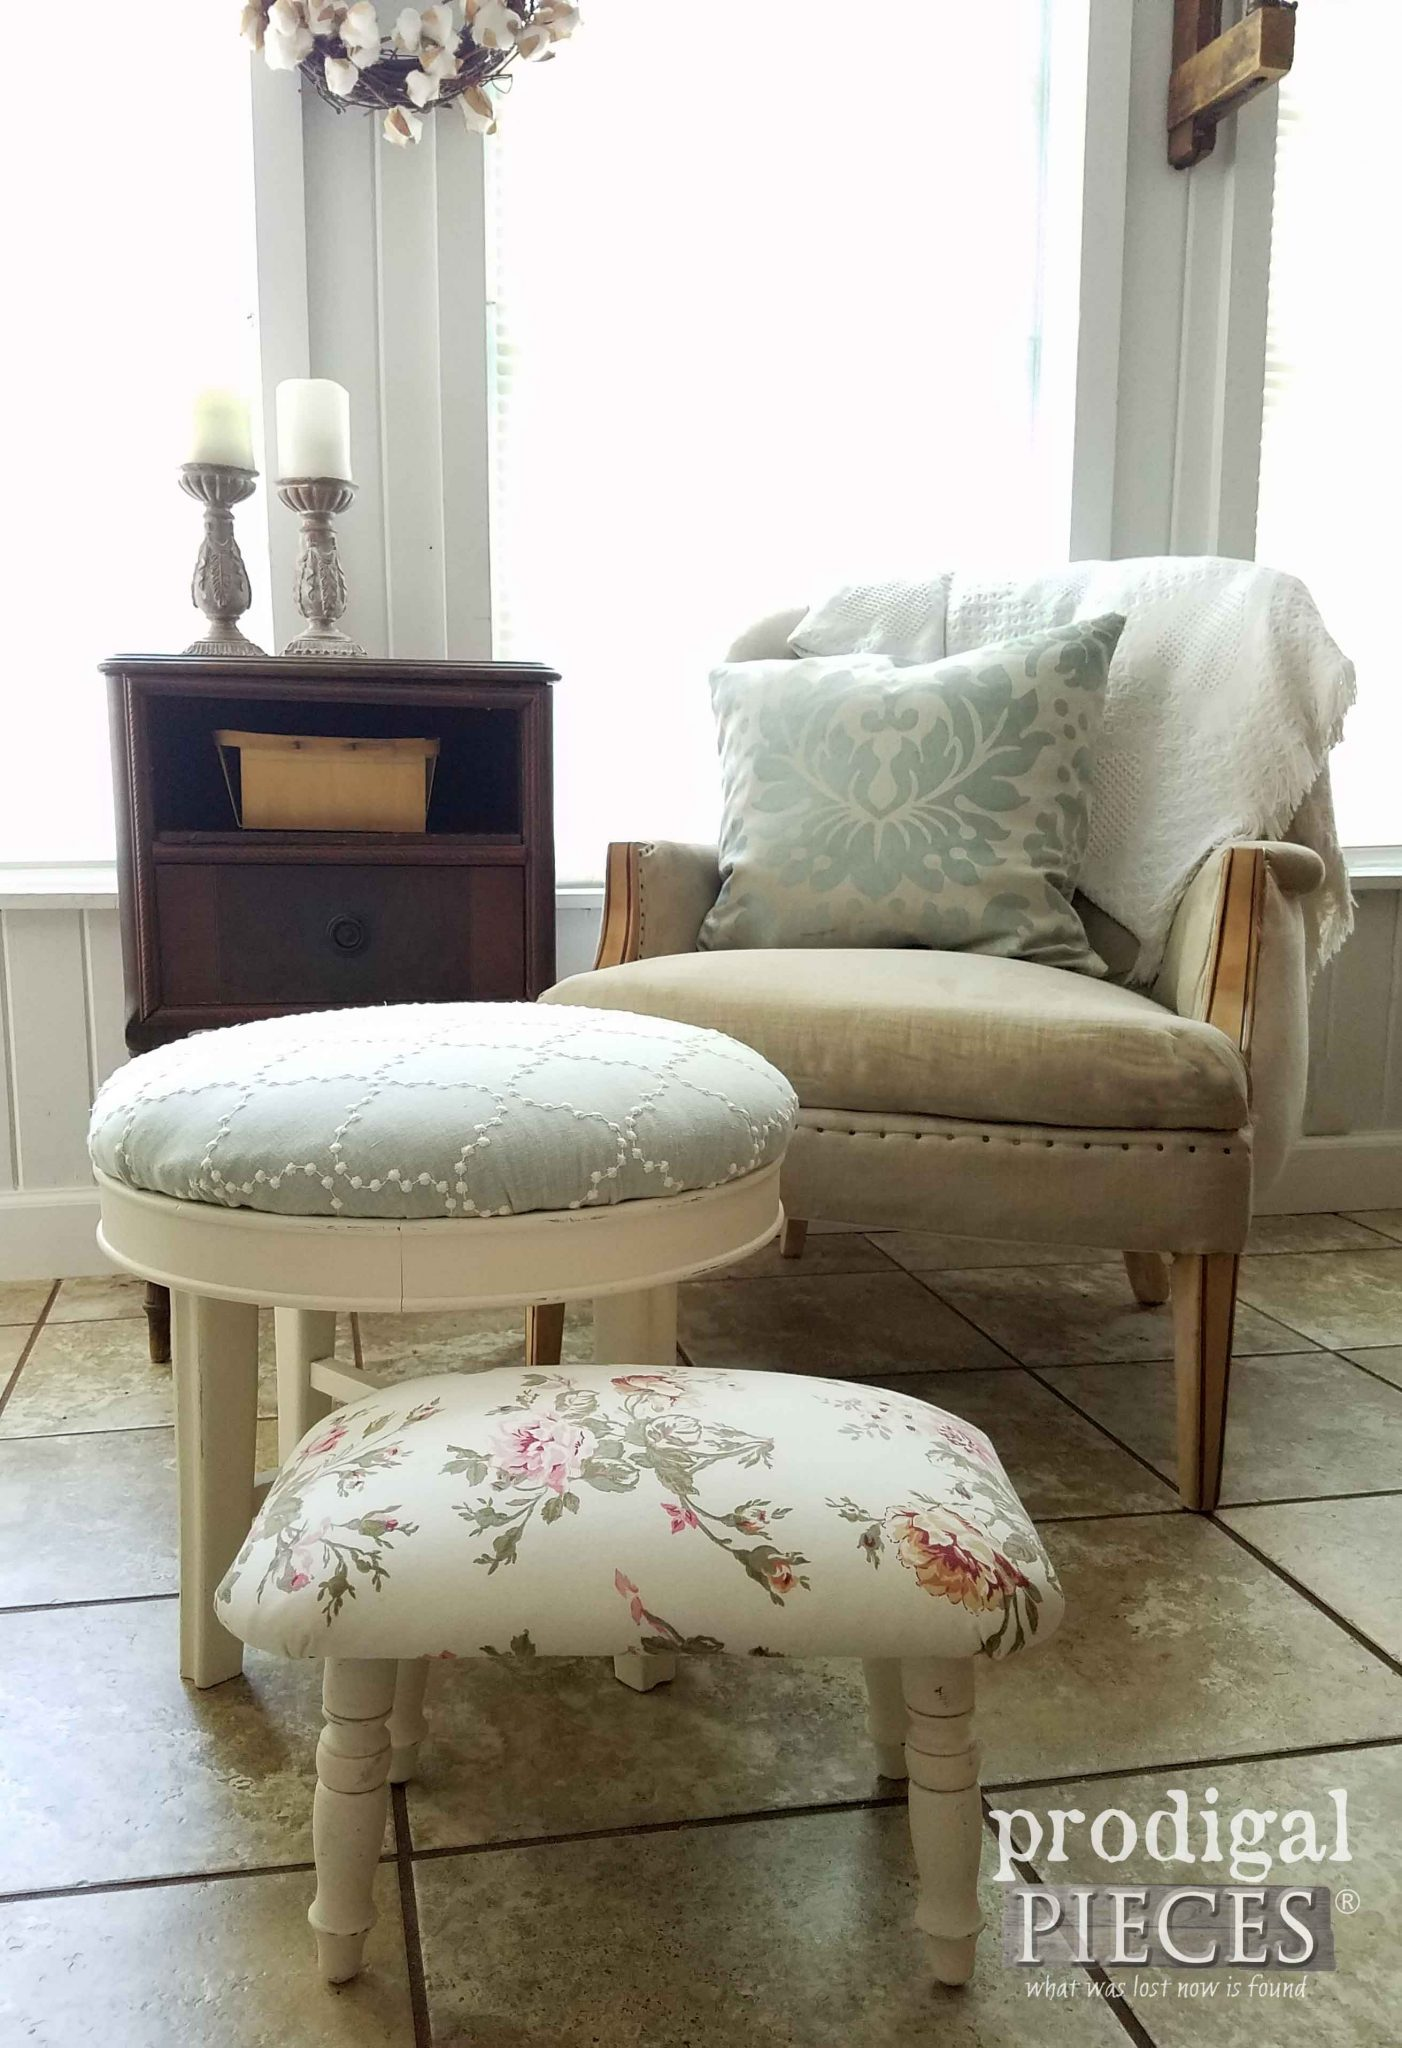 Vintage Footstool Upholstery with DIY tutorial by Prodigal Pieces | prodigalpieces.com